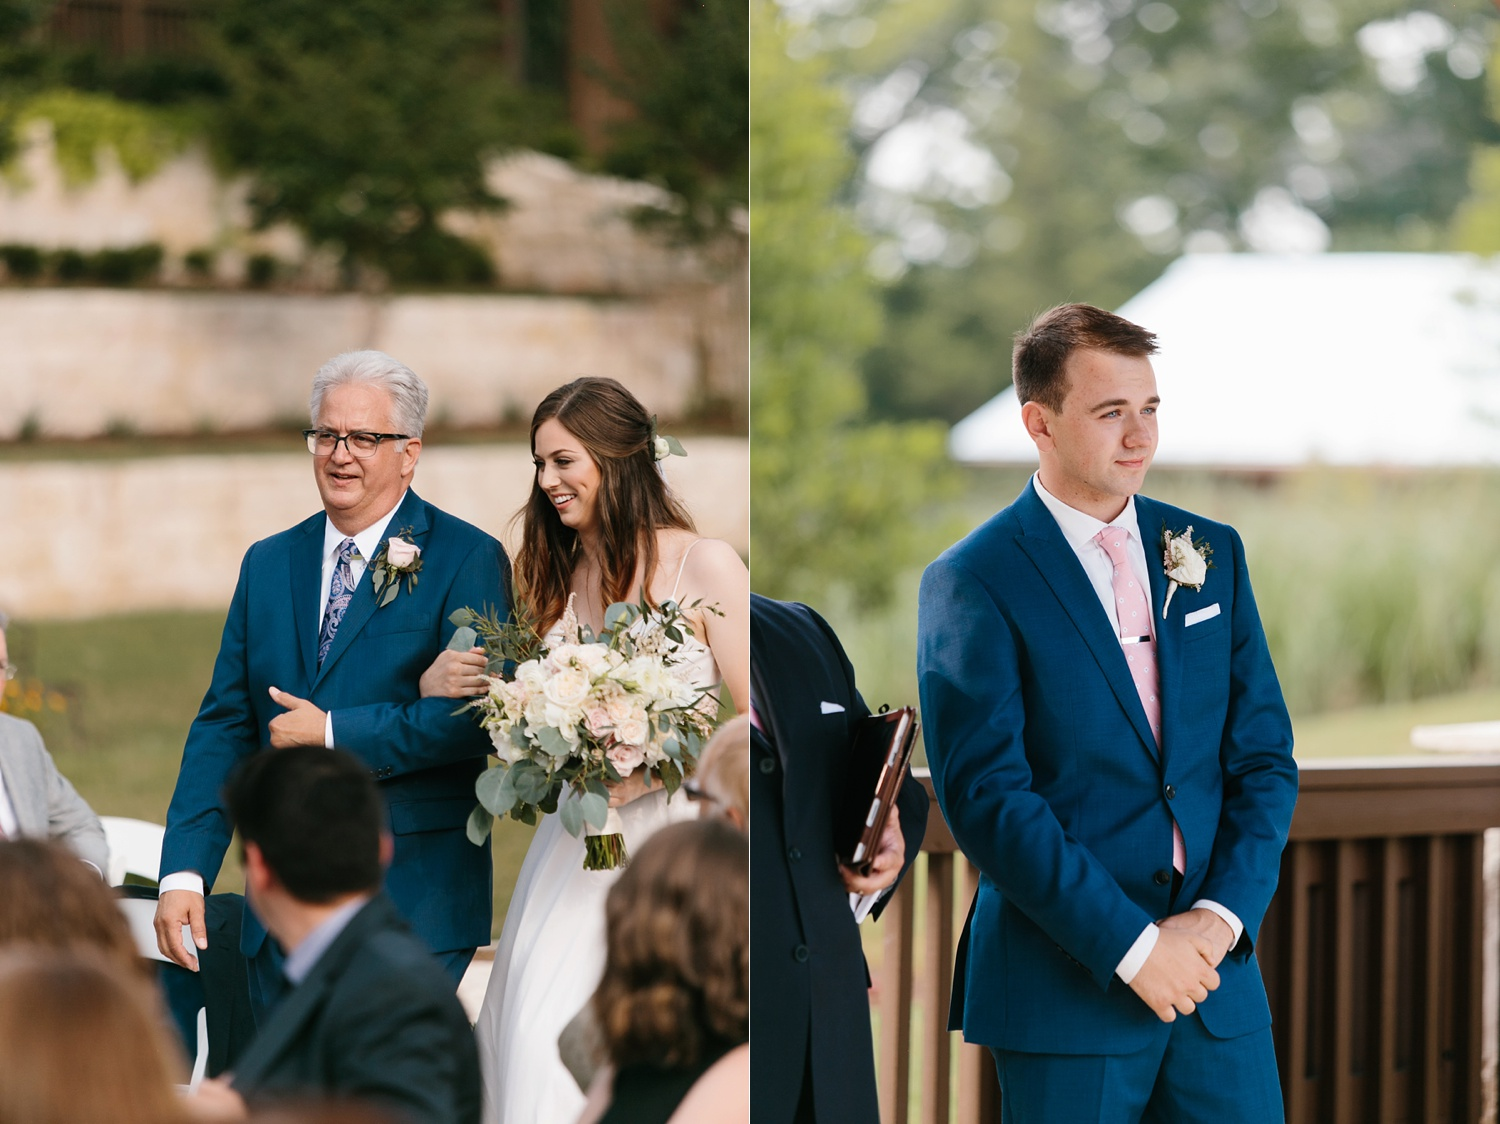 Aleta + Sabian a blush pink and navy blue wedding at The Springs in Anna, TX by North Texas Wedding Photographer _ Rachel Meagan Photography _ 049